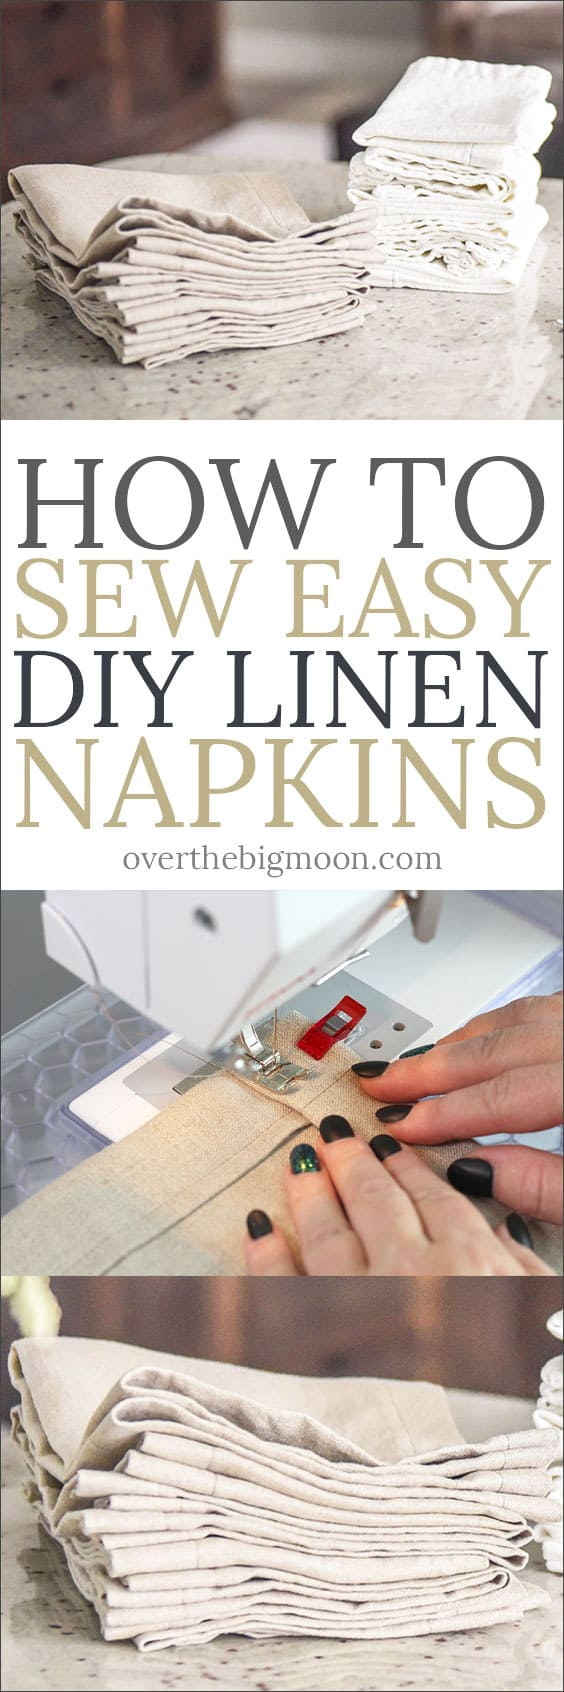 How to Sew Easy DIY Linen Dinner Napkins - step by step tutorial to help you feel confident to make your own set! From overthebigmoon.com!